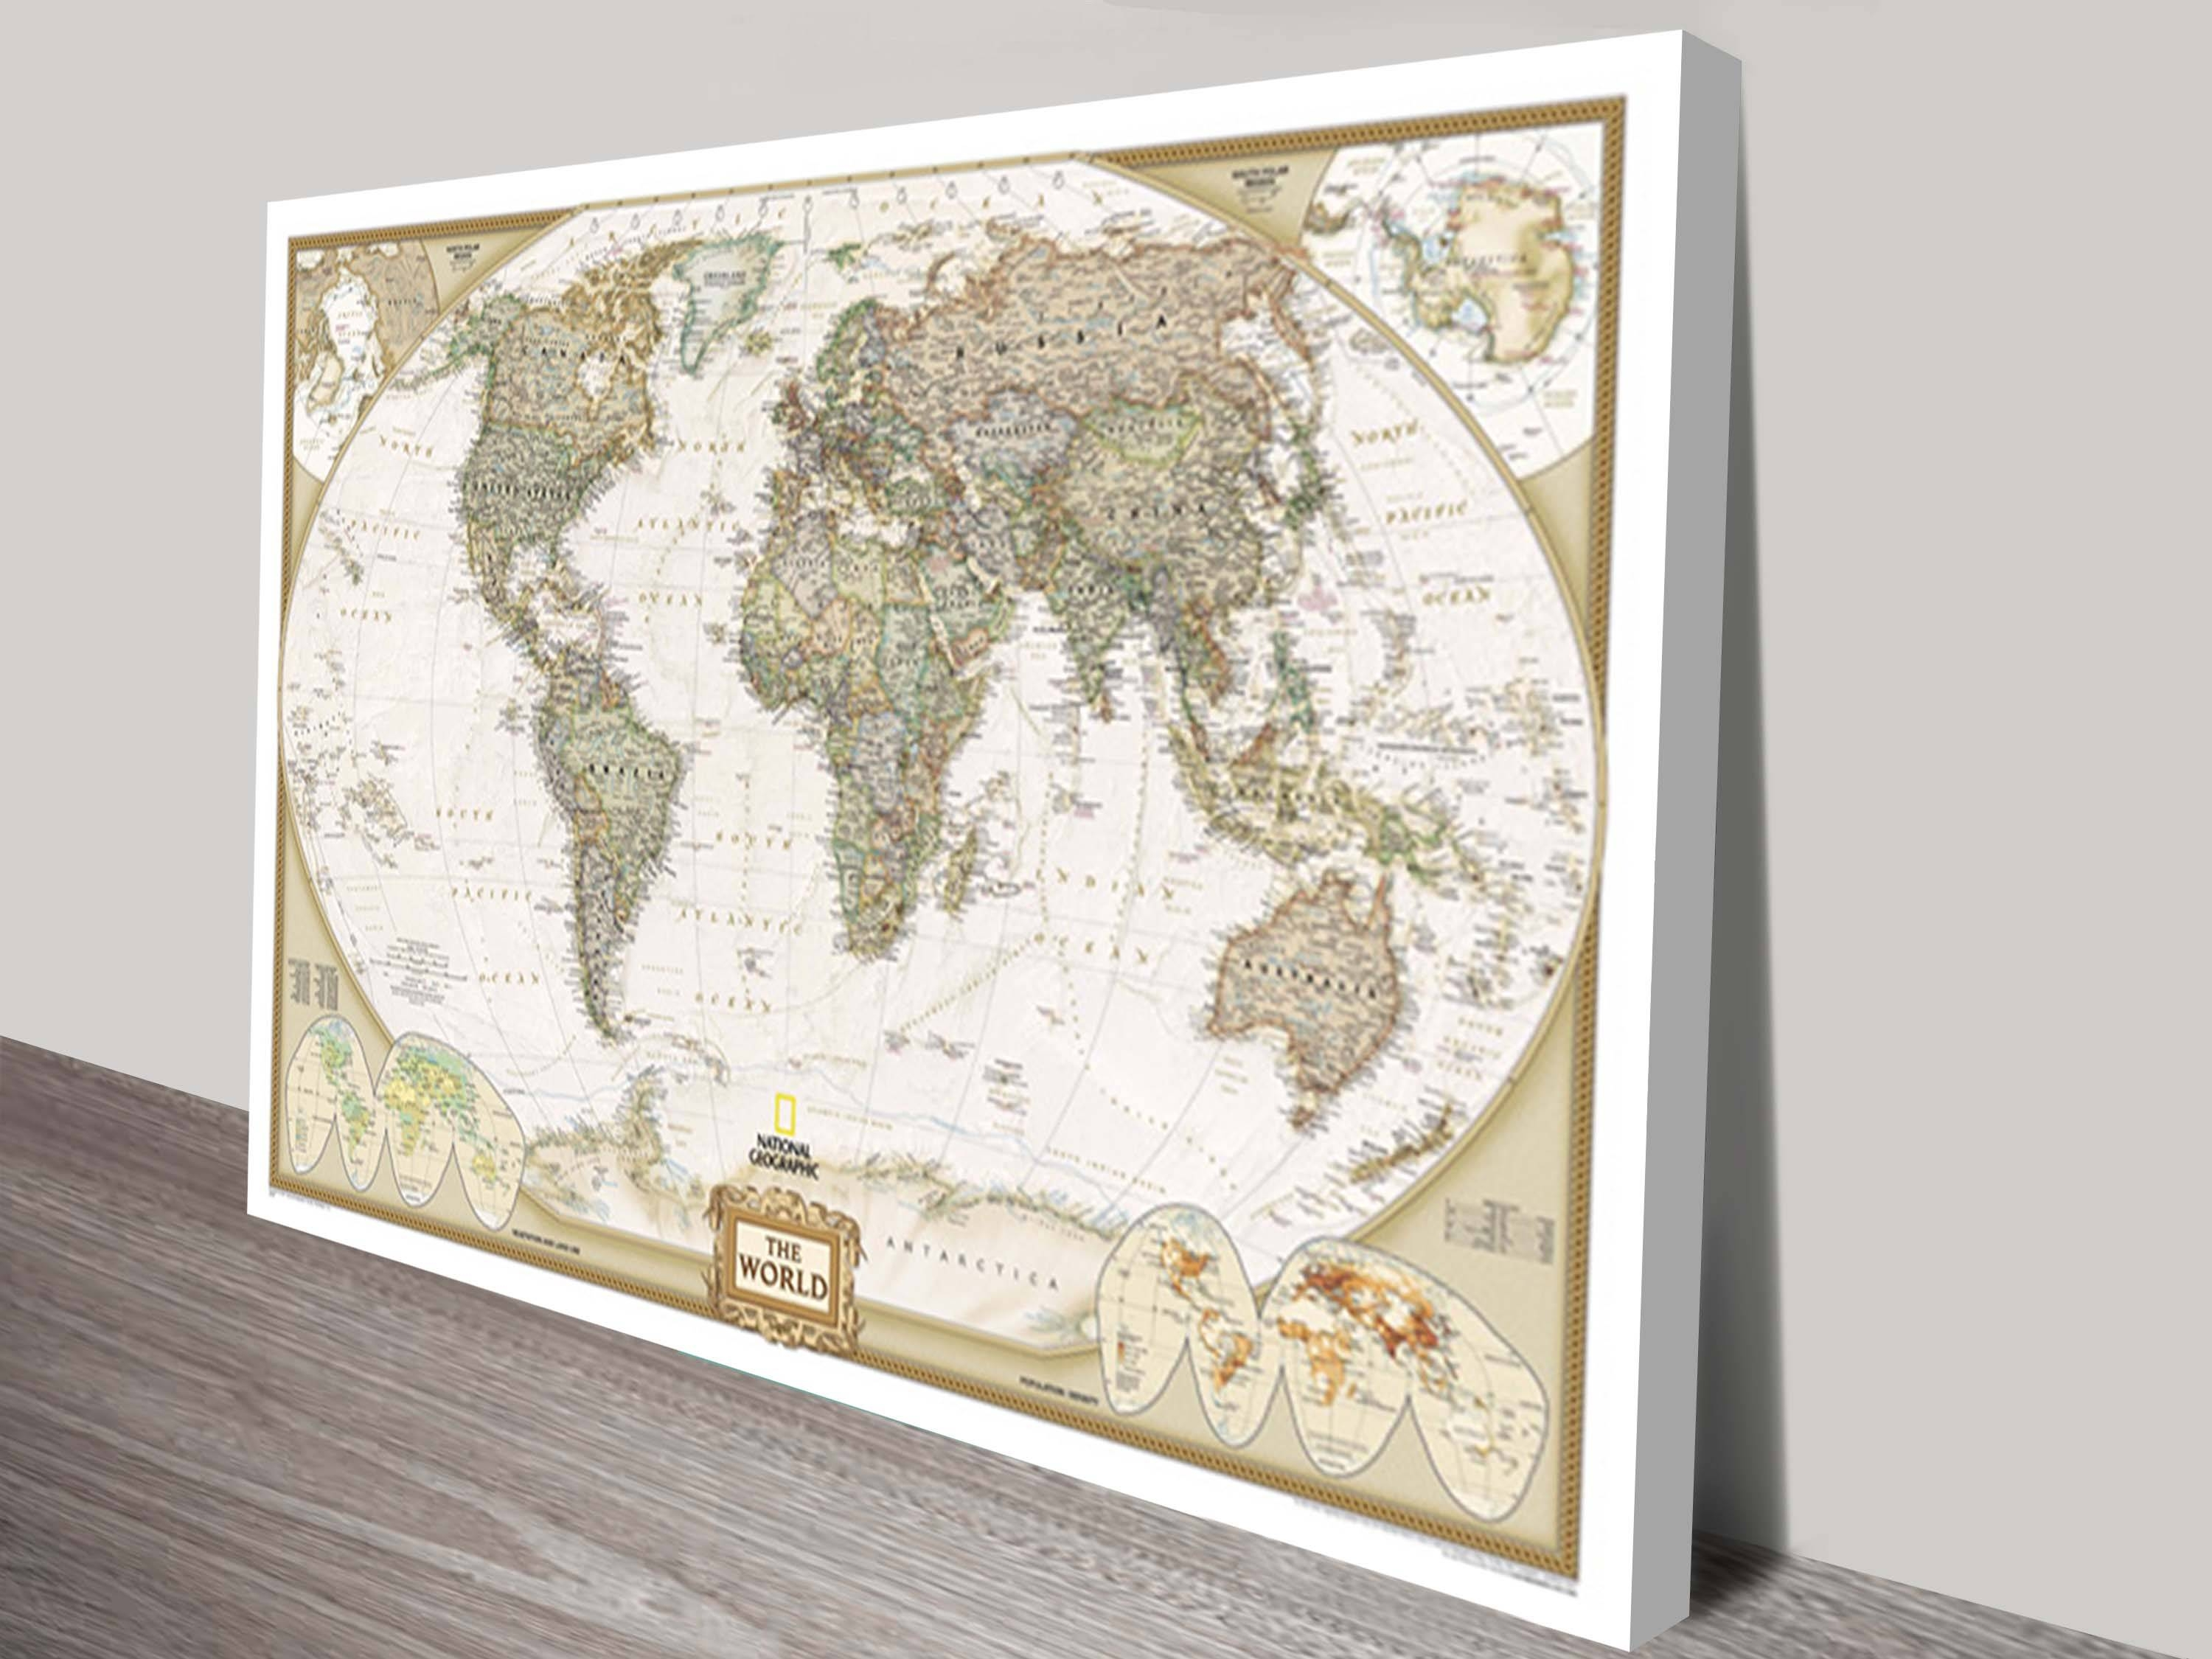 World Map Canvas Wall Art | Framed Maps Sydney With Regard To Best And Newest Framed World Map Wall Art (View 20 of 20)